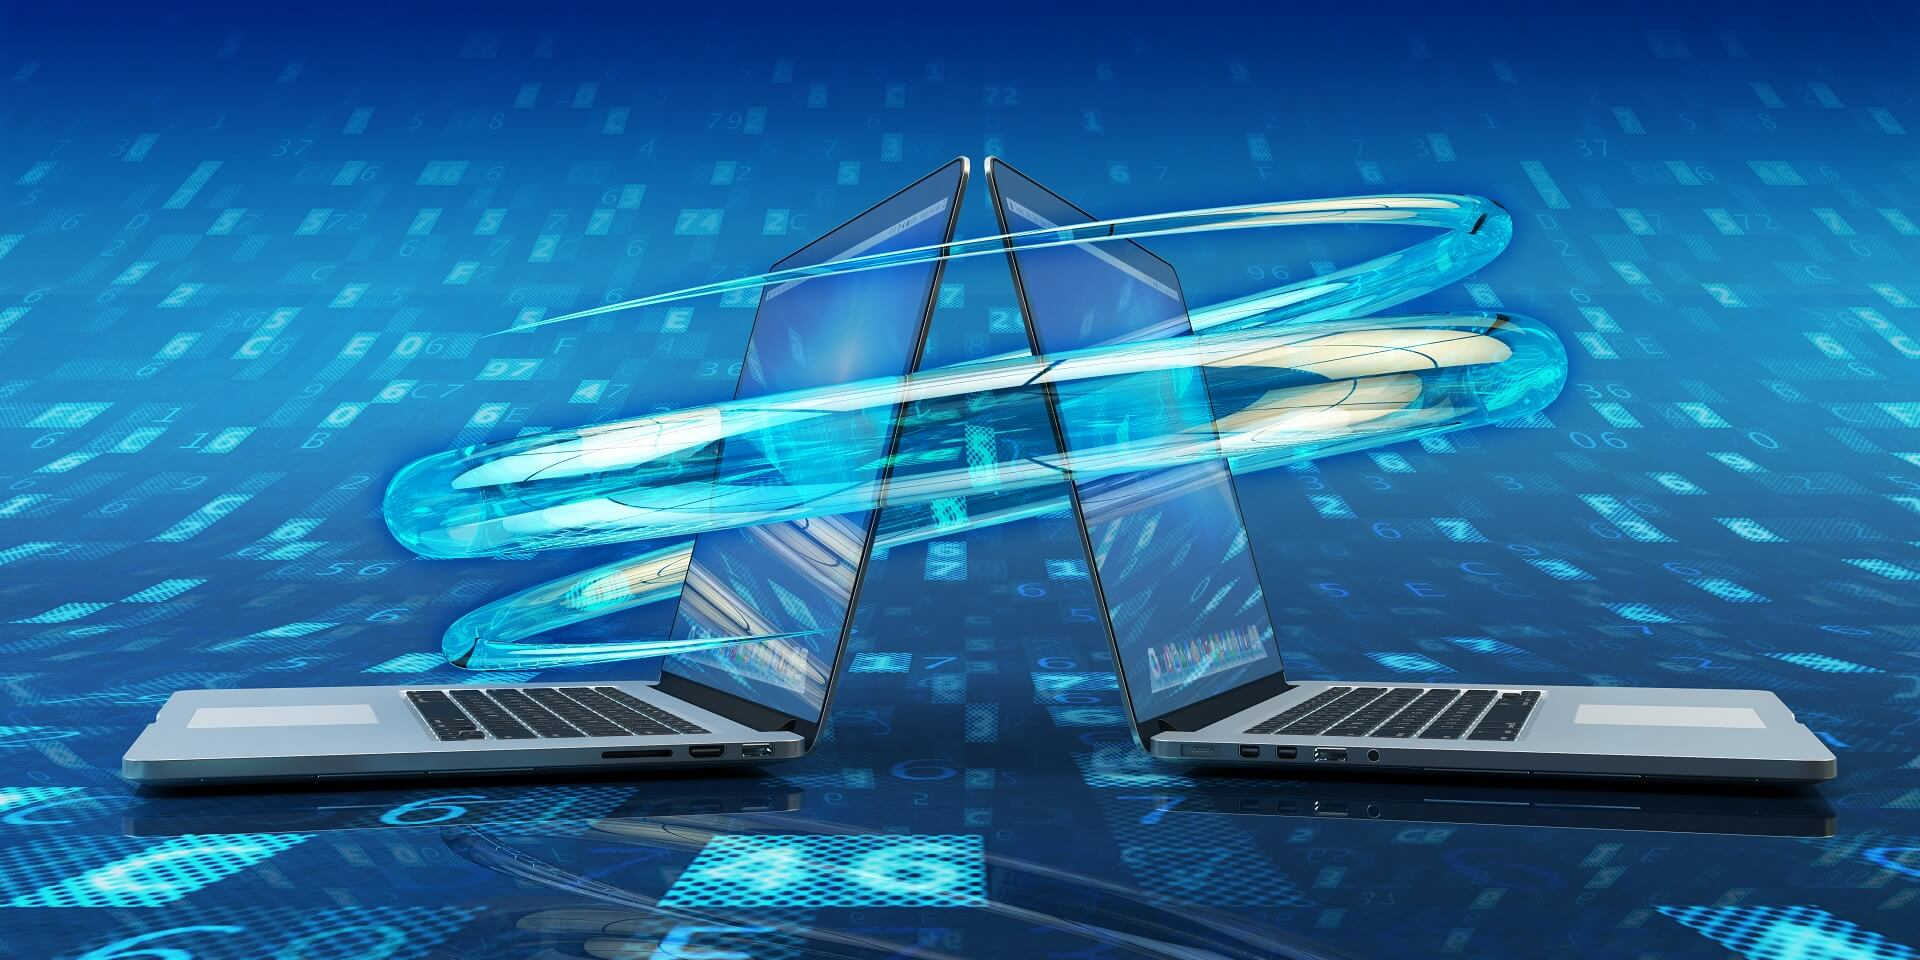 data-sync-process-computer-connection-and-communication-technology-concept-modern-laptops-on-blue-background-with-digital-data